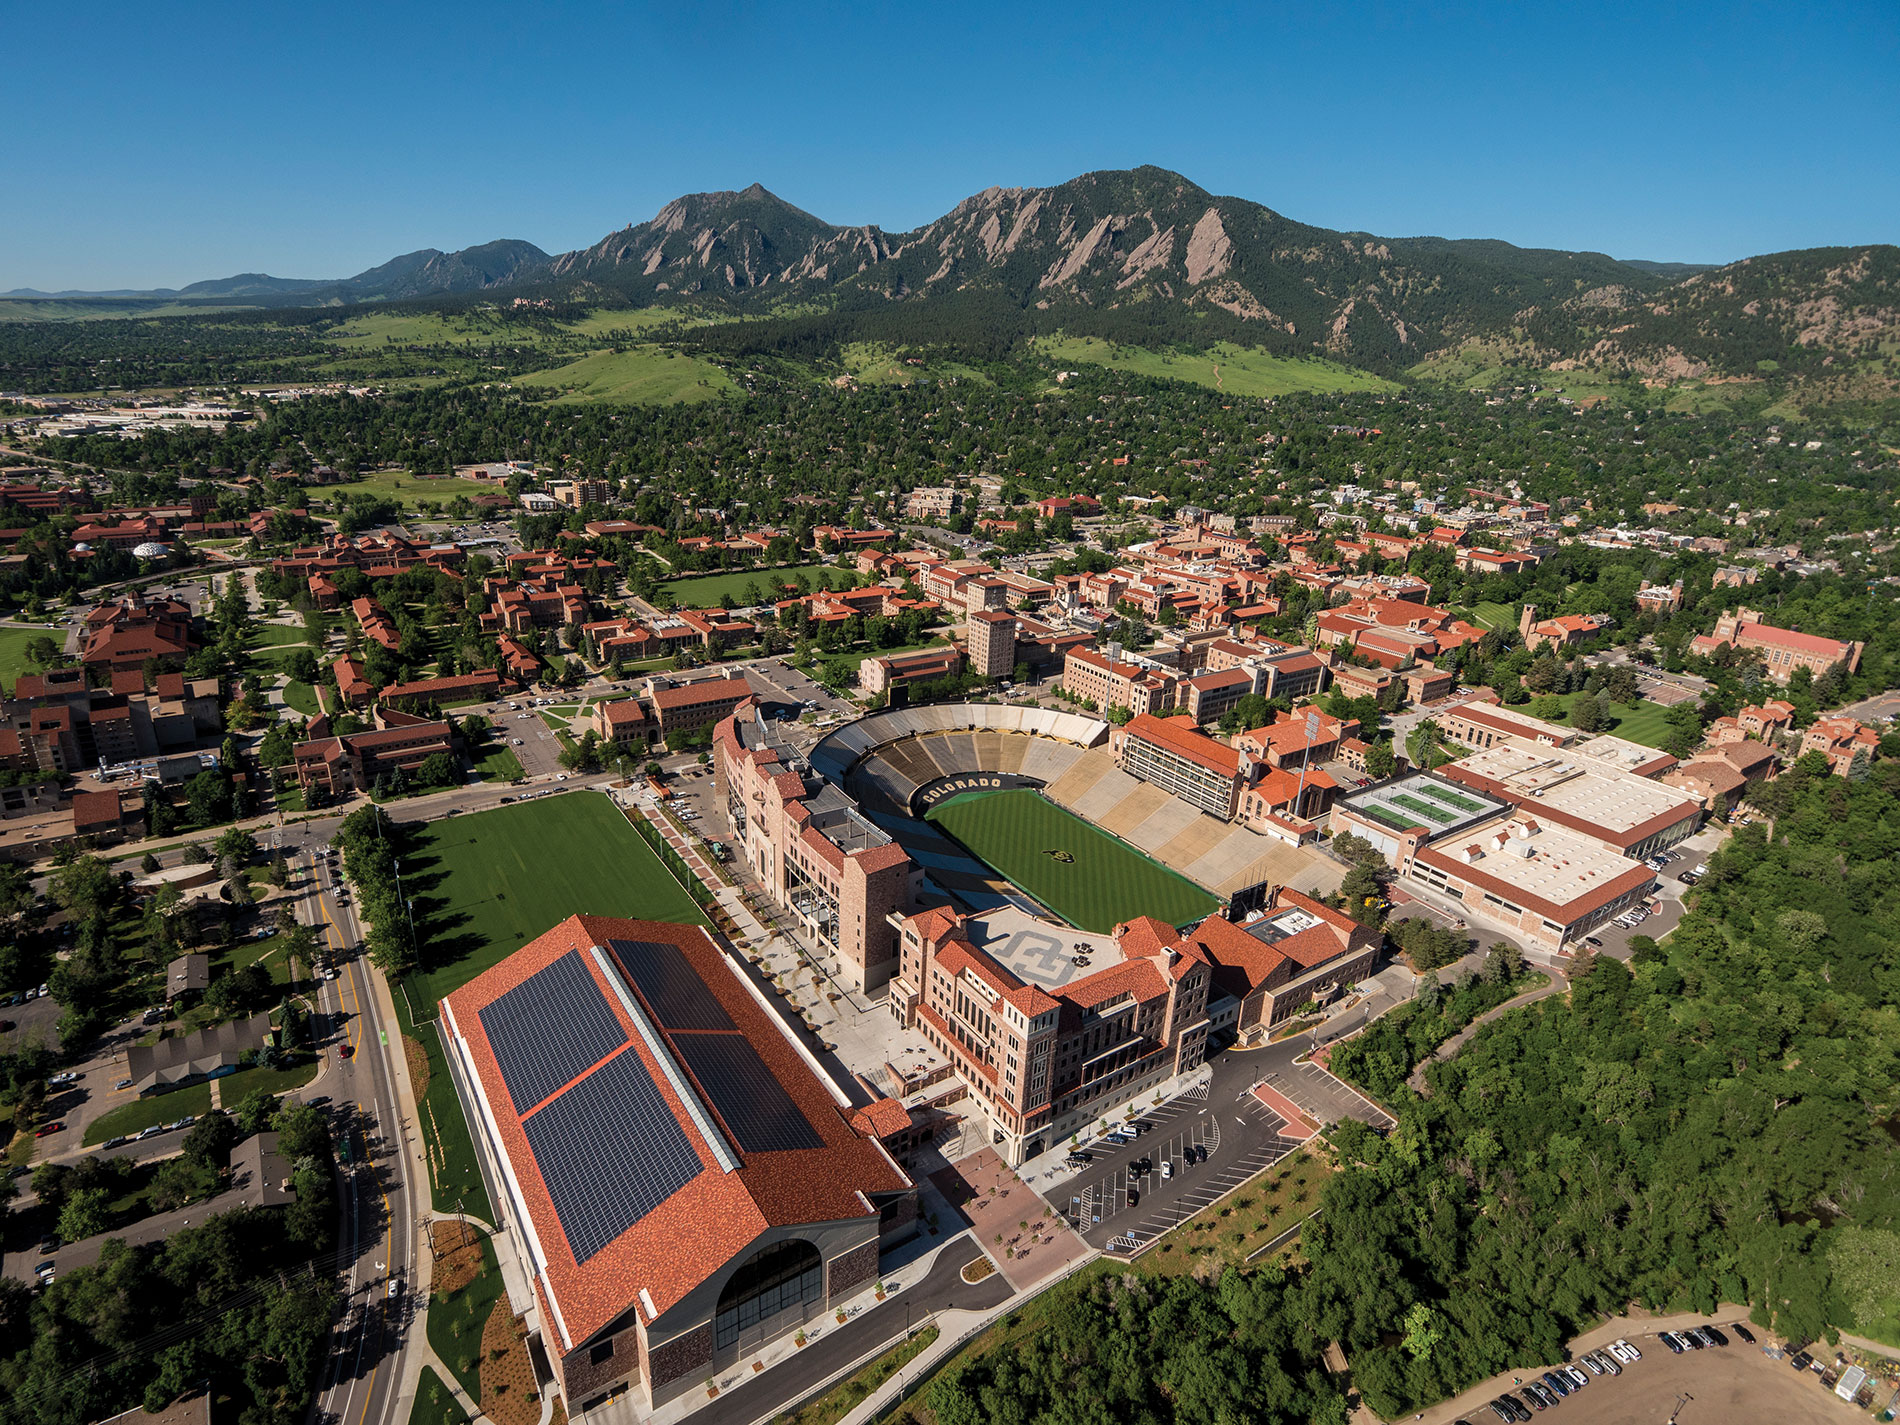 CU's athletic building project includes the indoor practice facility's rooftop solar array, which produces more than 1 million kWh per year and supplies green power for the entire facility. The athletic program buildings produce an estimated 80–90 percent of clean power for the campus. Courtesy of University of Colorado Boulder